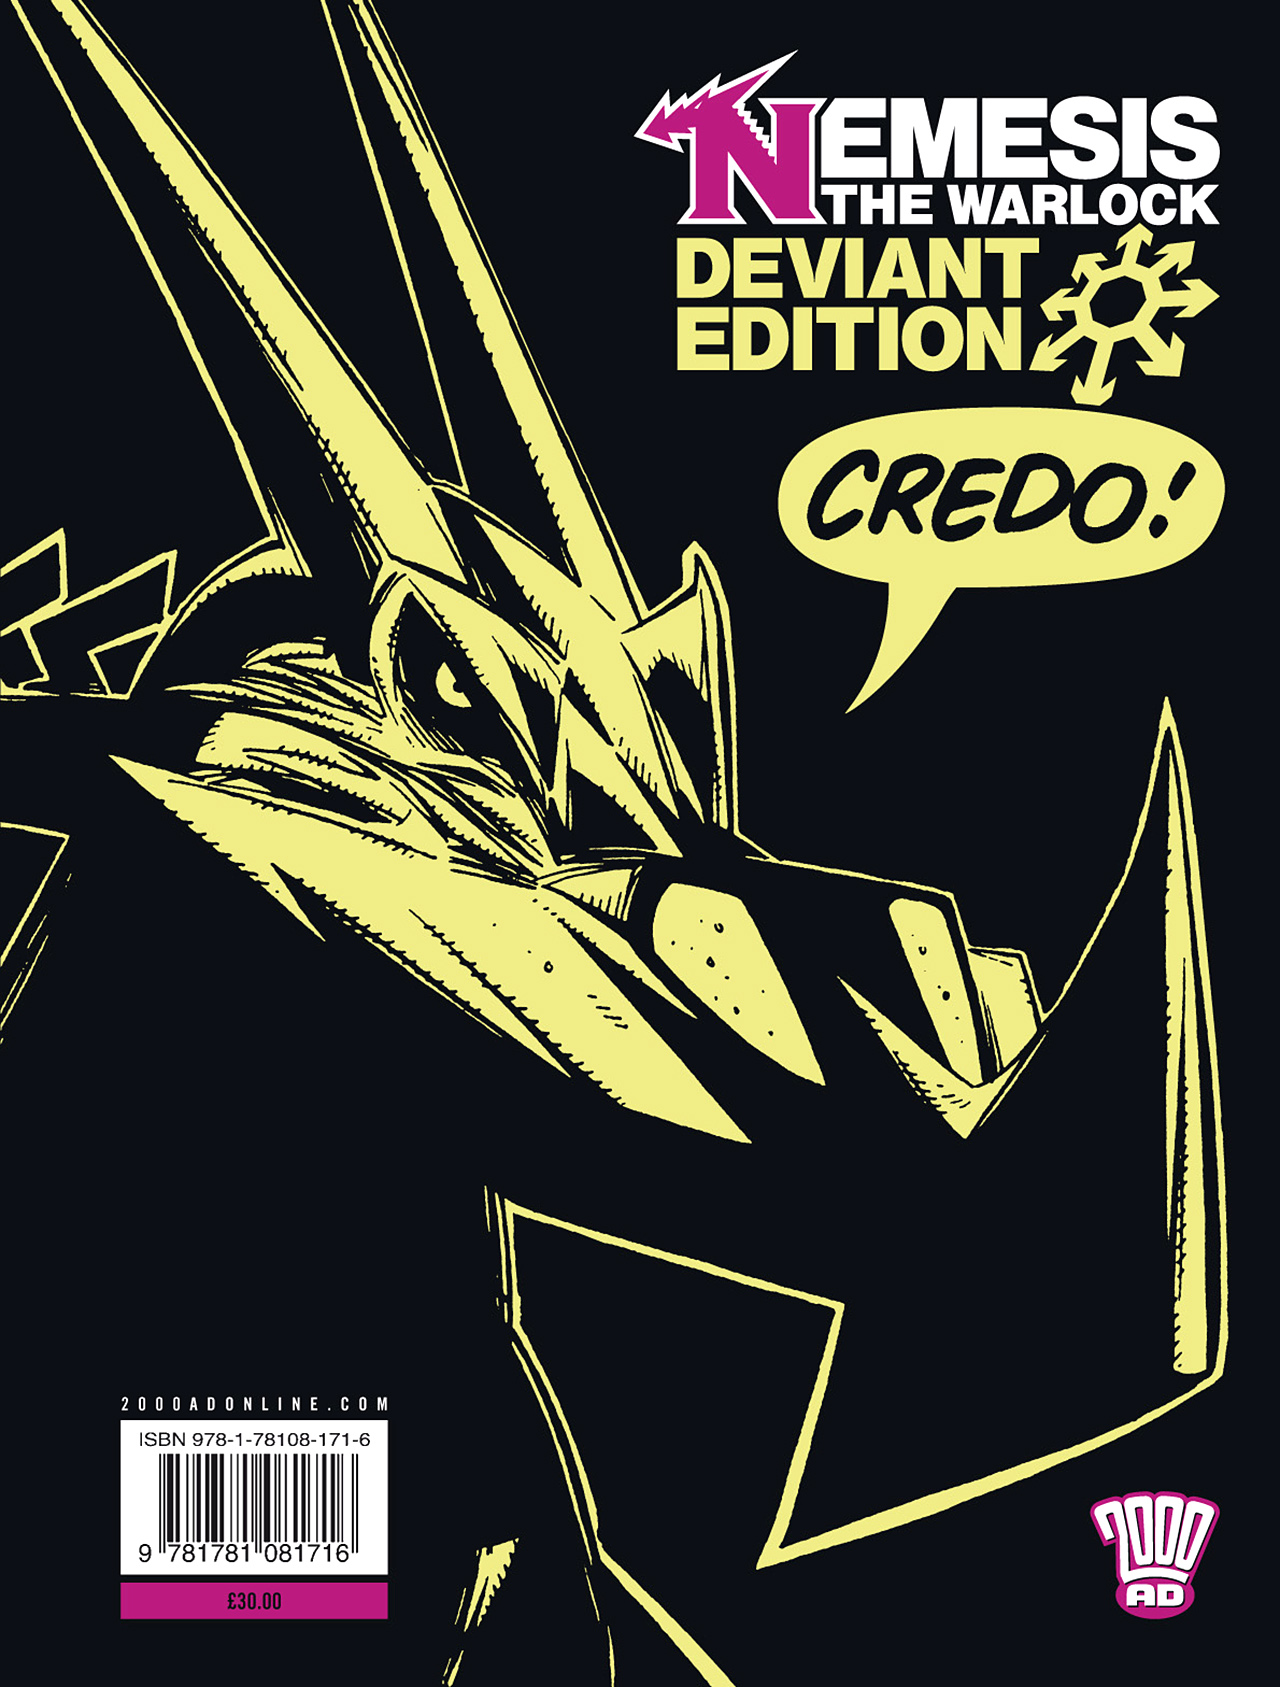 Read online Nemesis The Warlock comic -  Issue # TPB Deviant Edition - 239